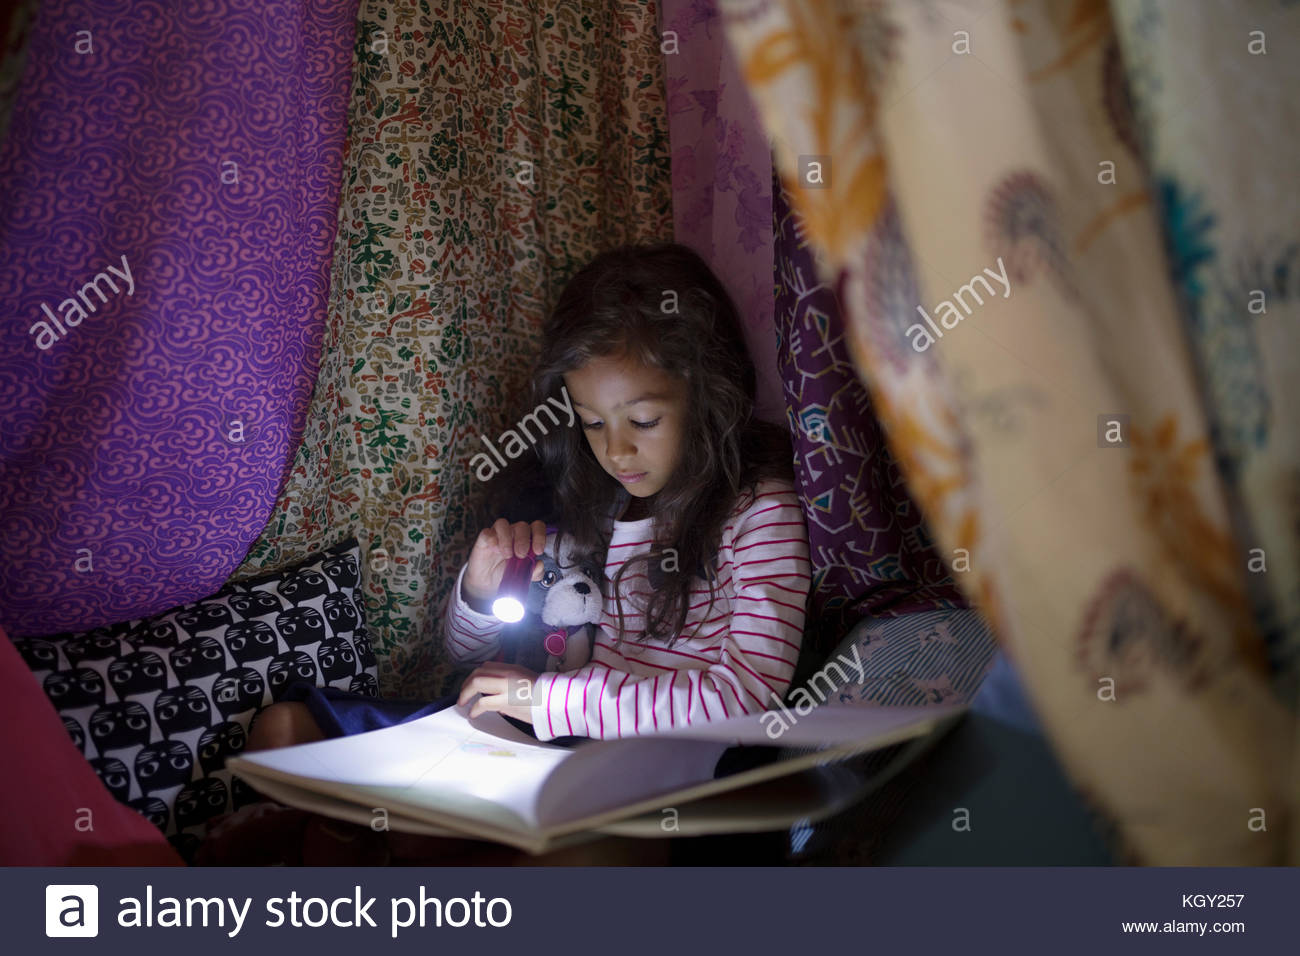 Bedtime story stock photos bedtime story stock images alamy girl with flashlight reading bedtime story in tent at night stock image sciox Gallery